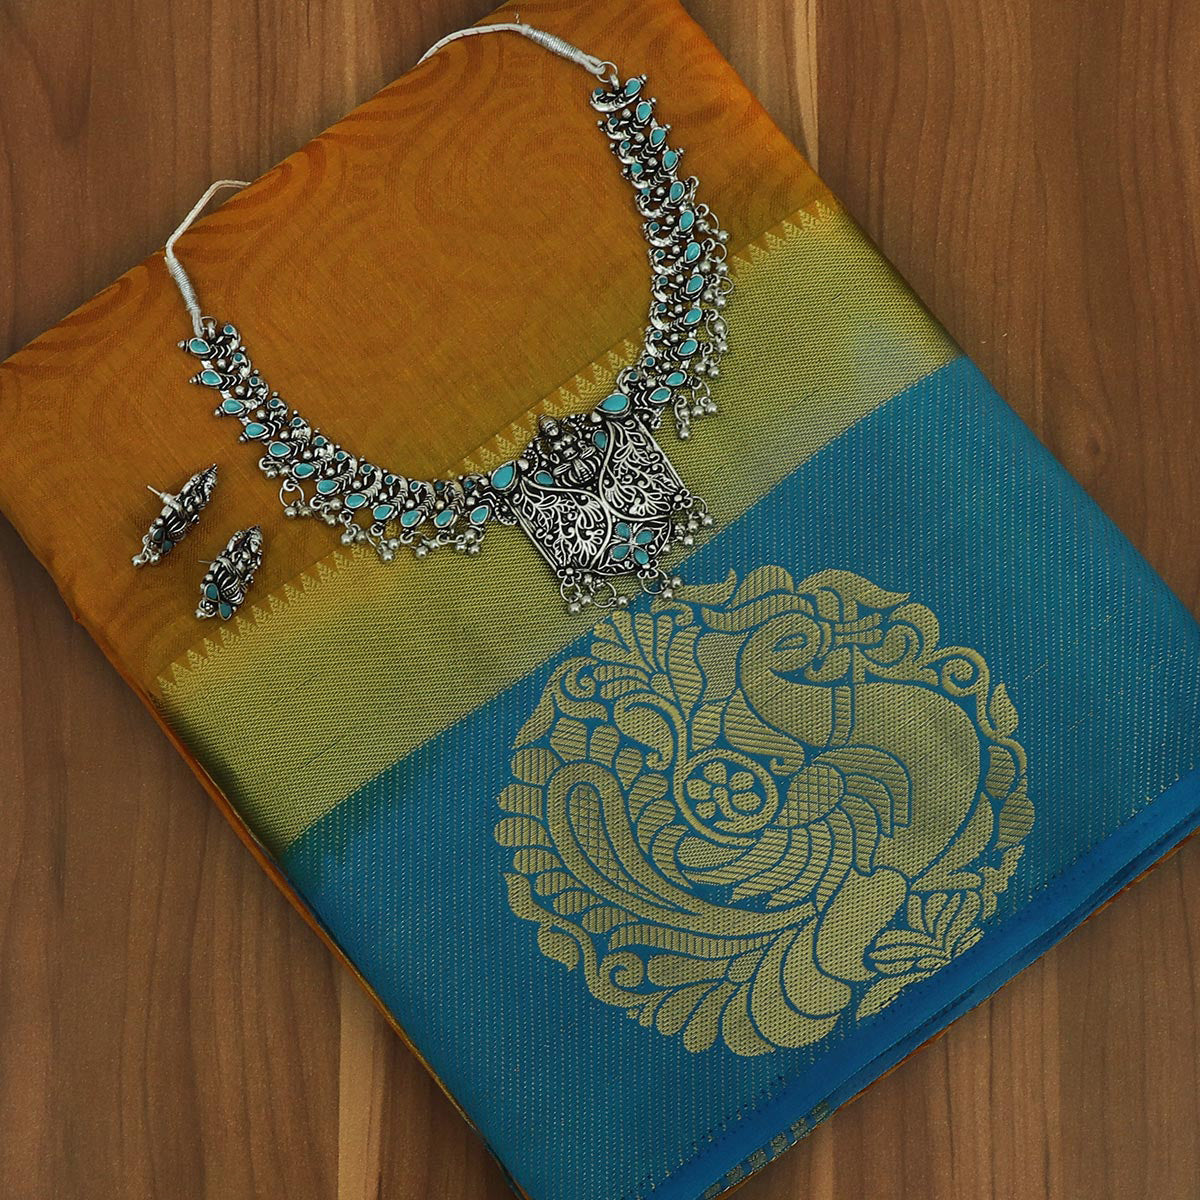 Raw Silk Saree Honey color and Sky Blue with Annam Zari border and jewel